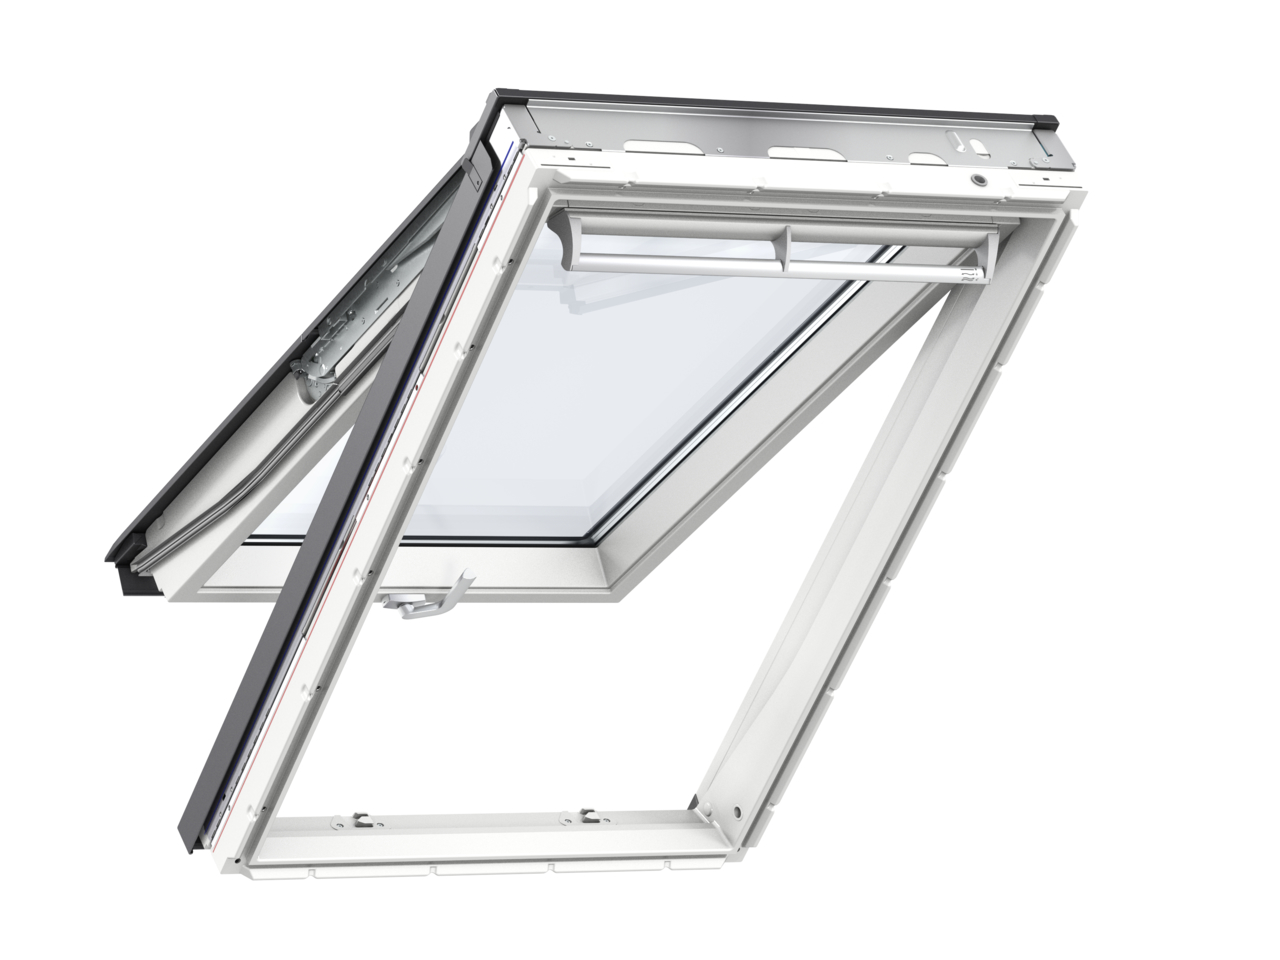 Velux GPU FK06 660 x 1180mm Top Hung 66Pane Roof Window - White Polyurethane